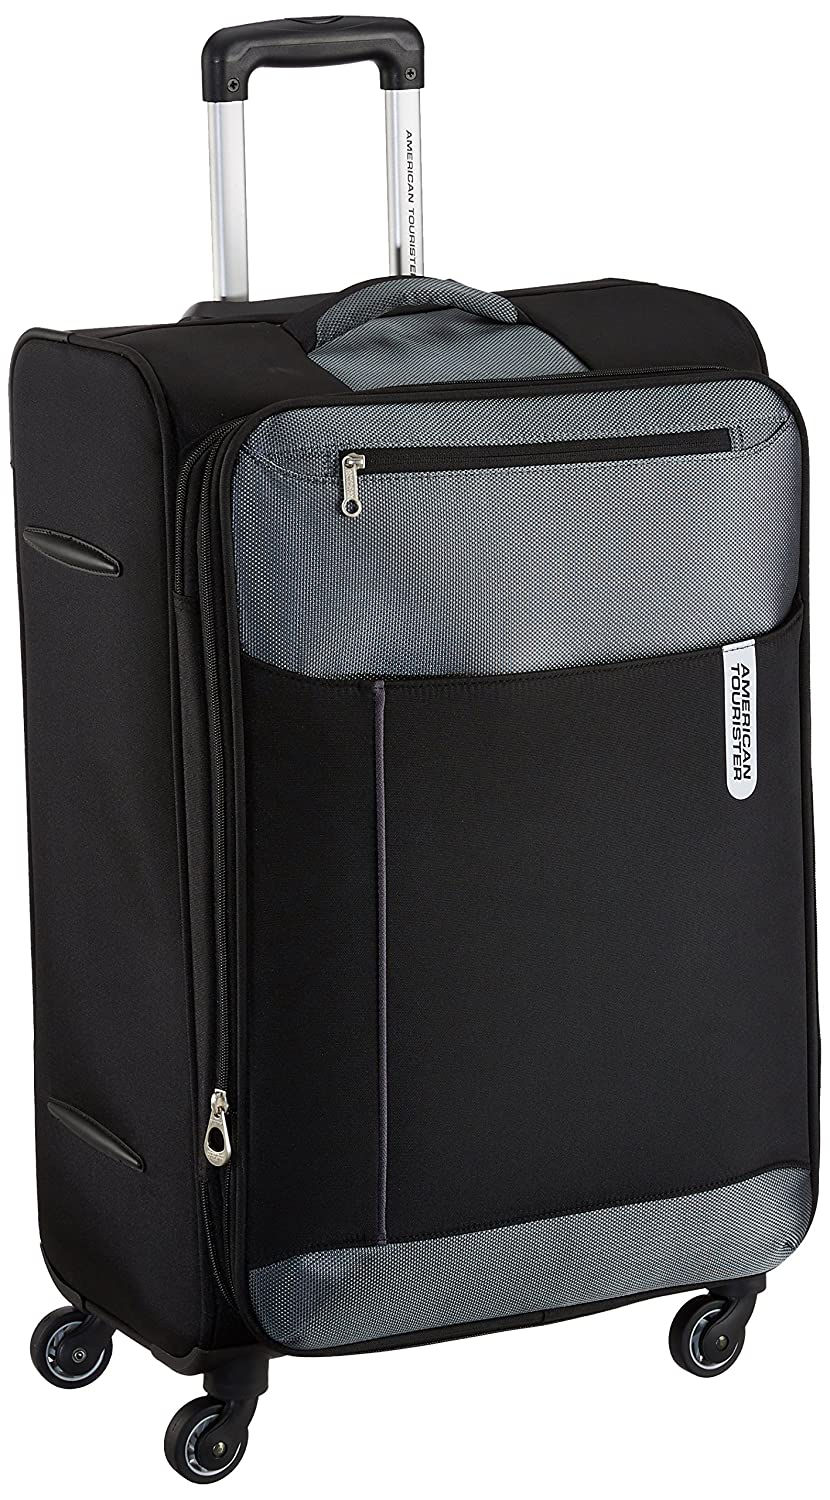 e3fb6802c American Tourister Portugal Polyester 69.5 cms Black Soft Sided Suitcase  (AMT Portugal SP 69CM Black)